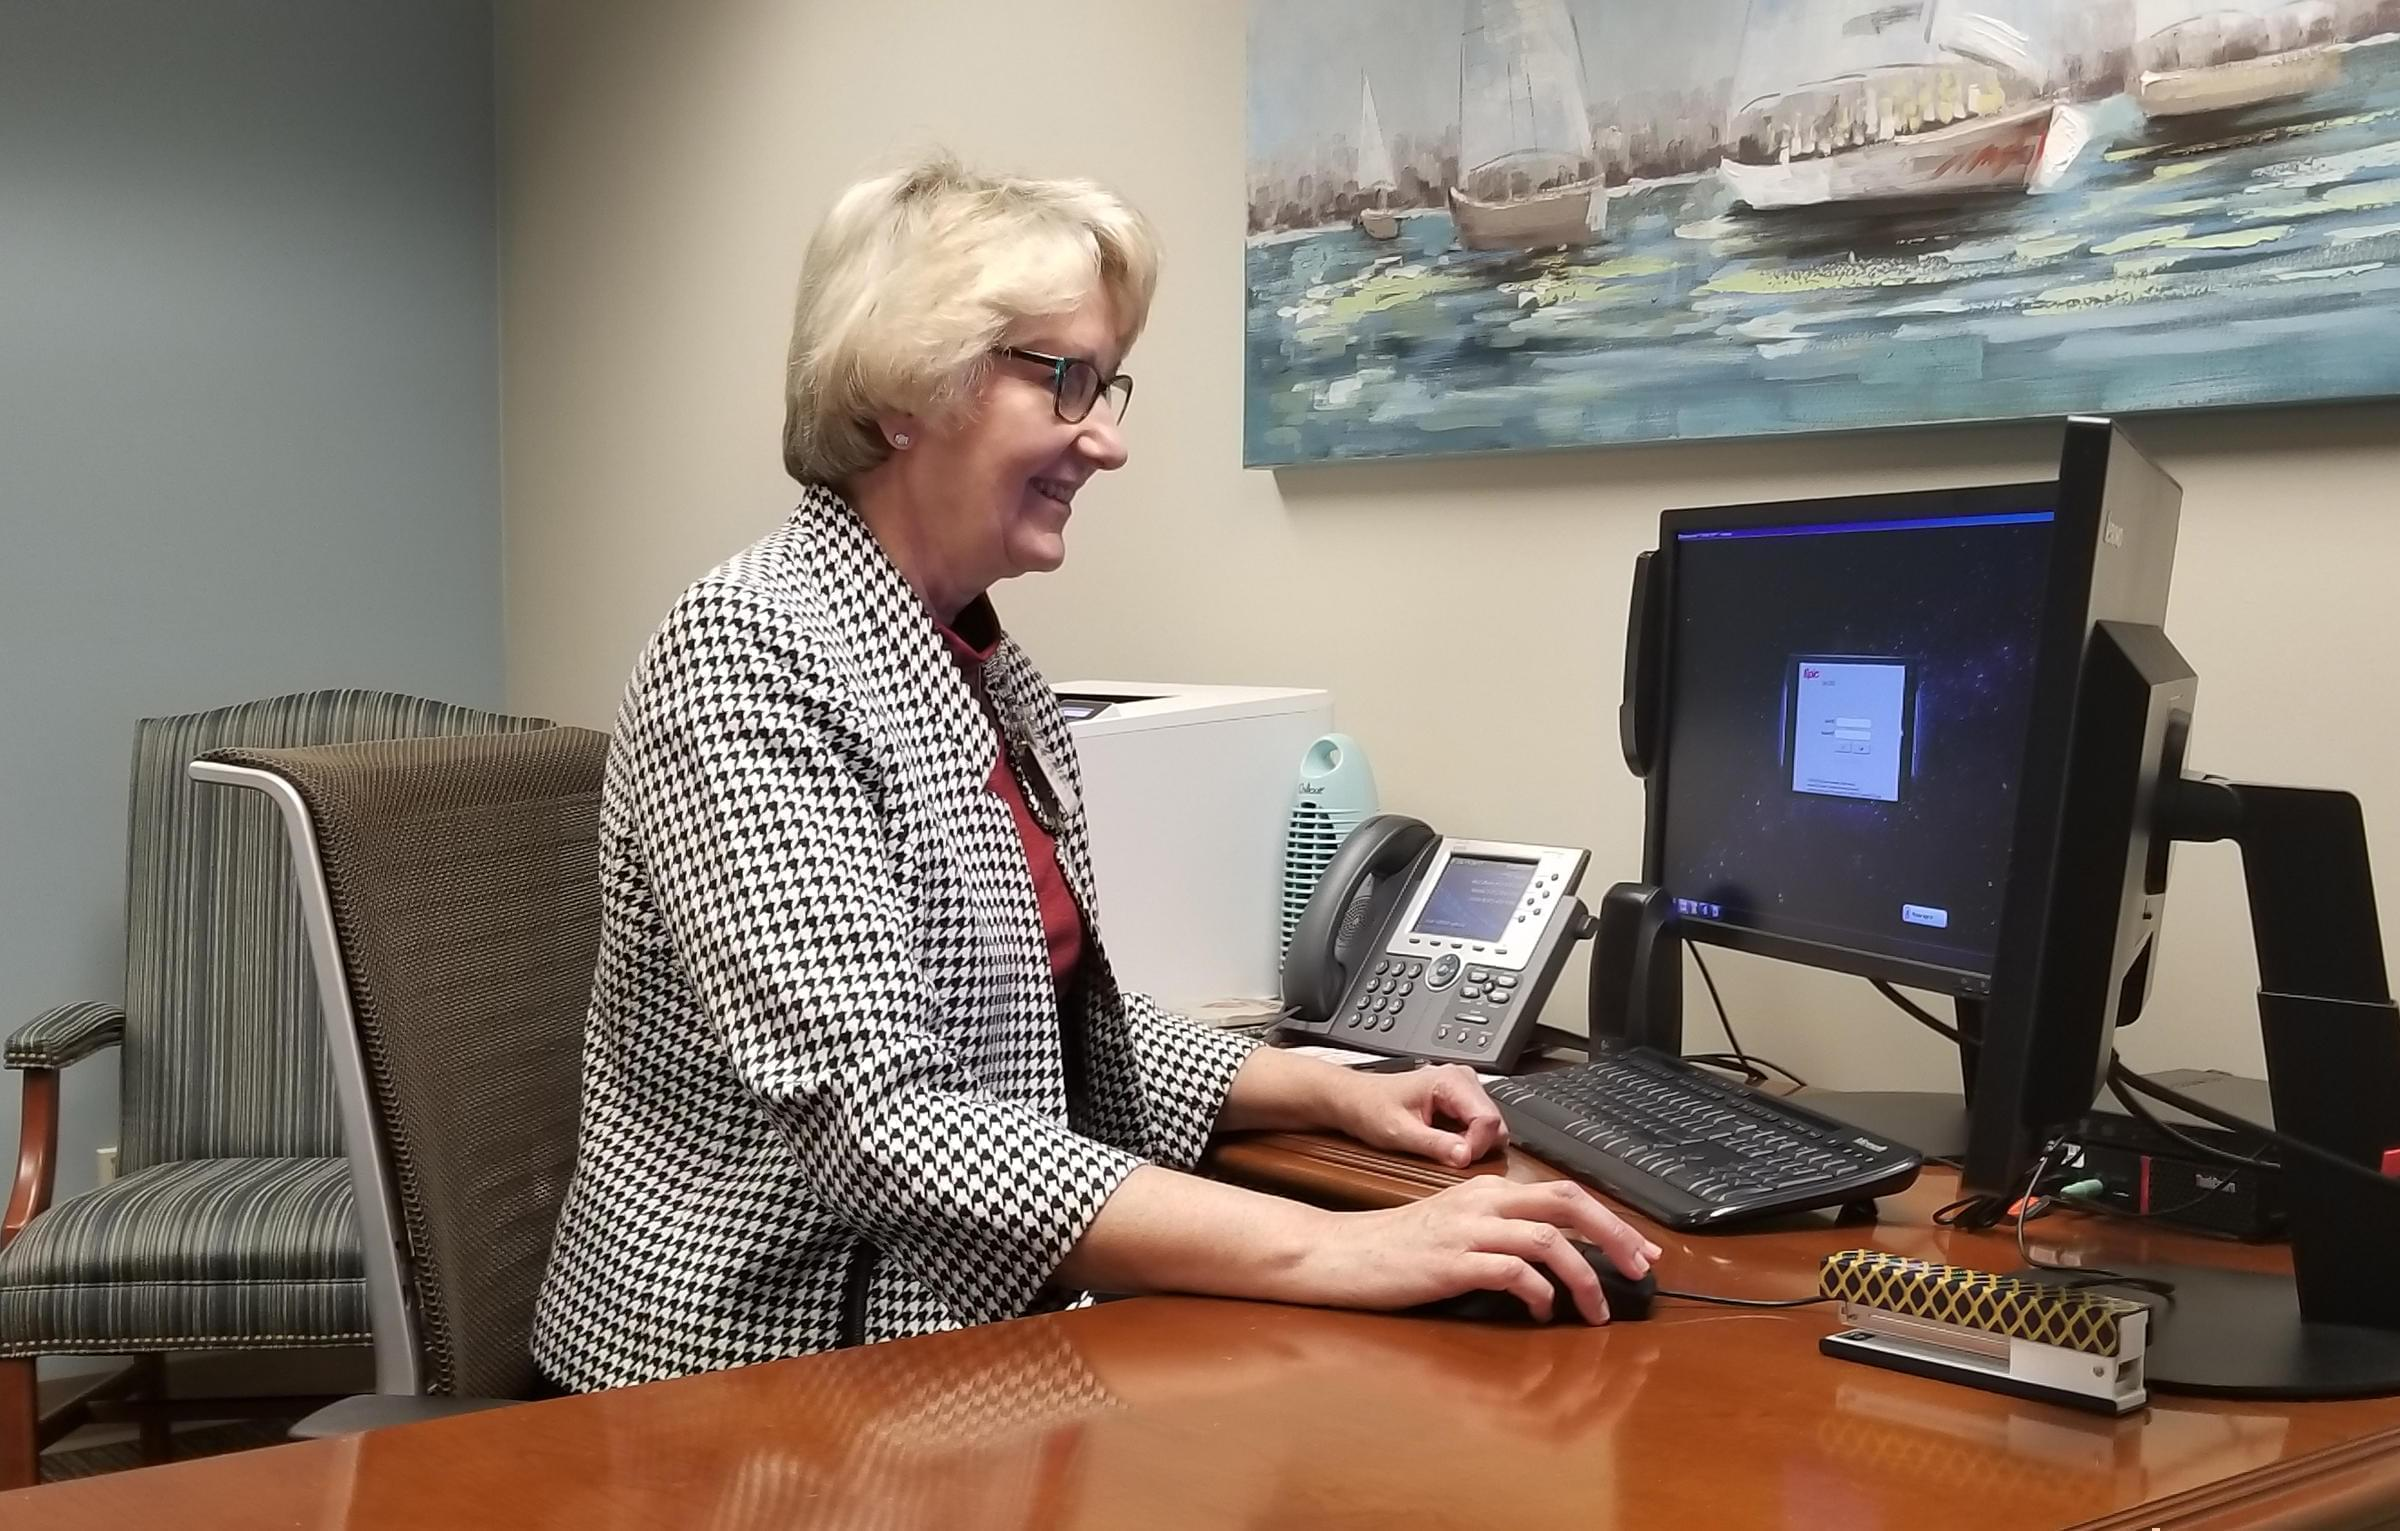 Dr. Gina Huhnke in her office at Midtown Deaconess Hospital in Evansville, Indiana.